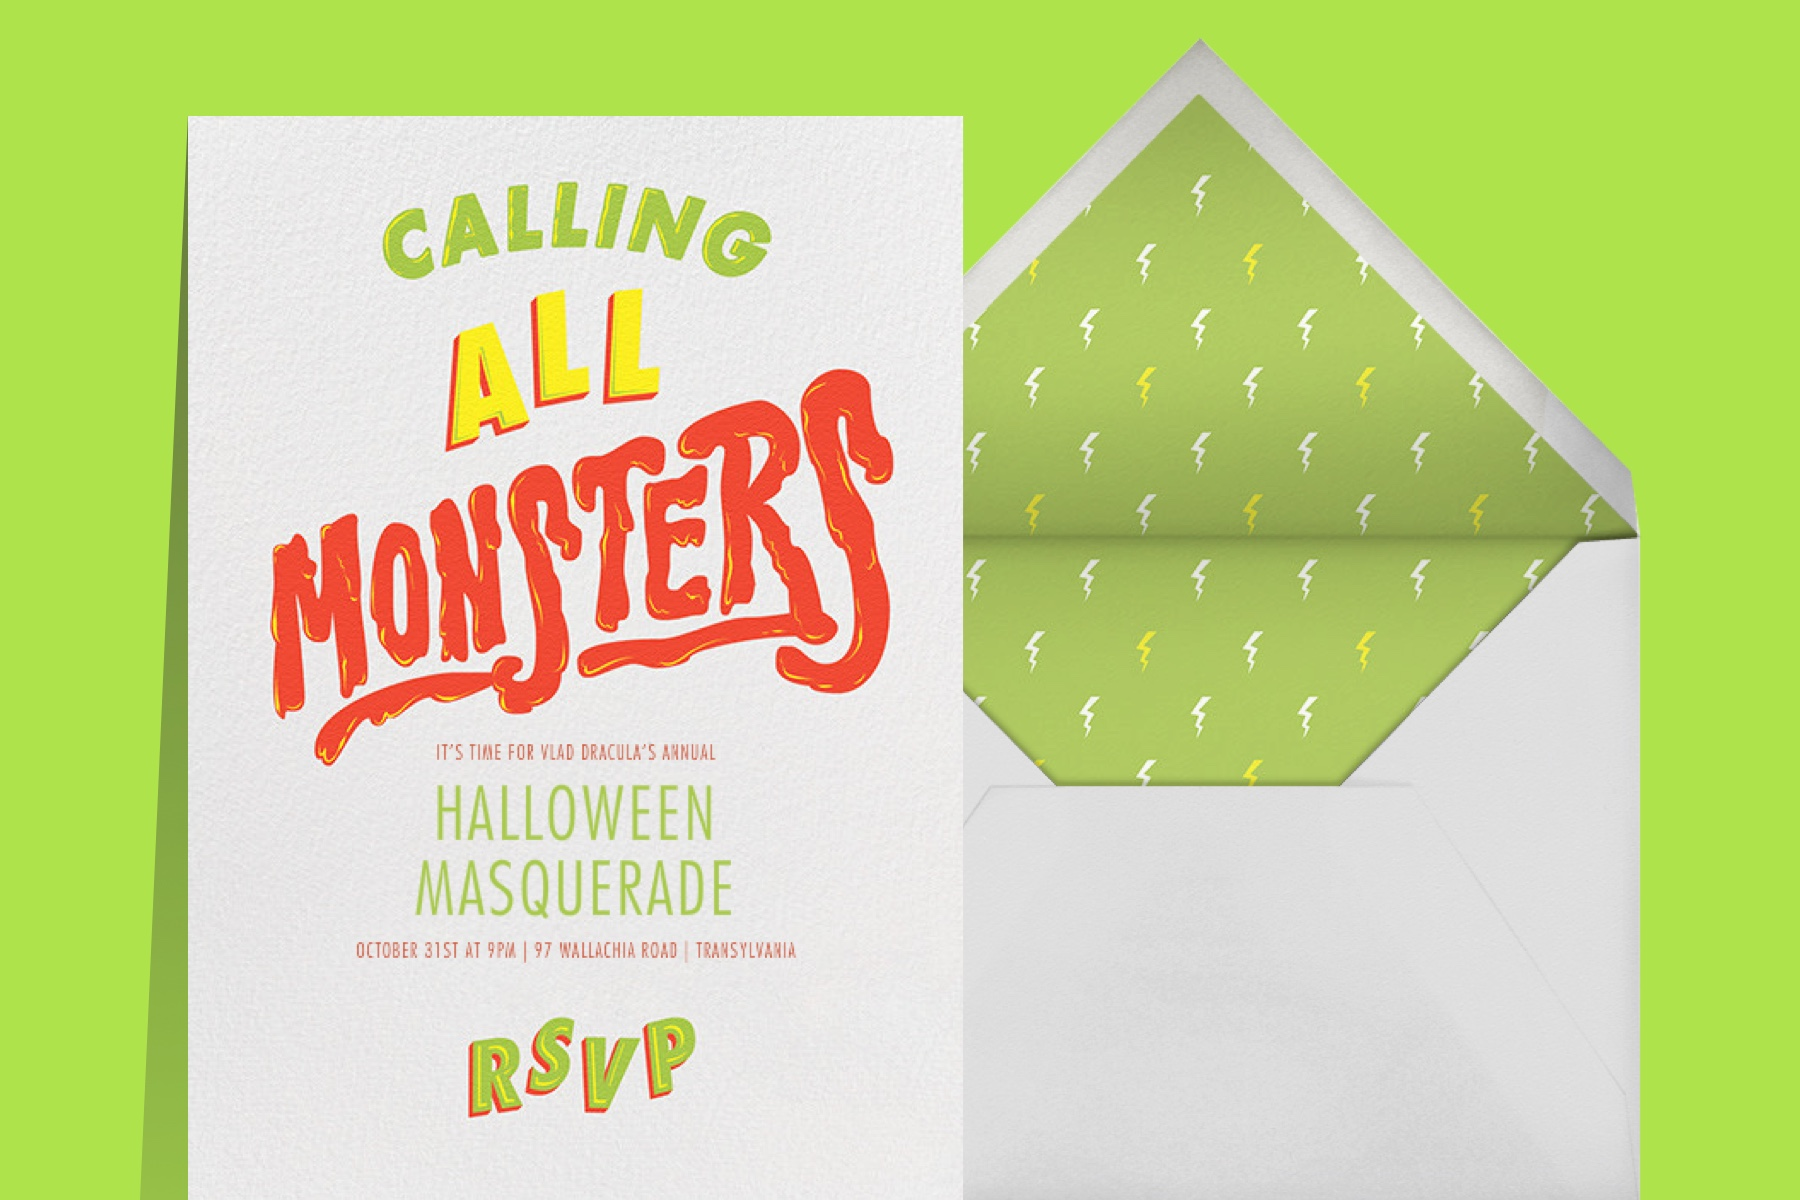 """""""Horror Strikes at Midnight"""" invitation by Paperless Post. The white card features graphic text that reads """"Calling All Monsters"""". The card appears on a lime green background."""